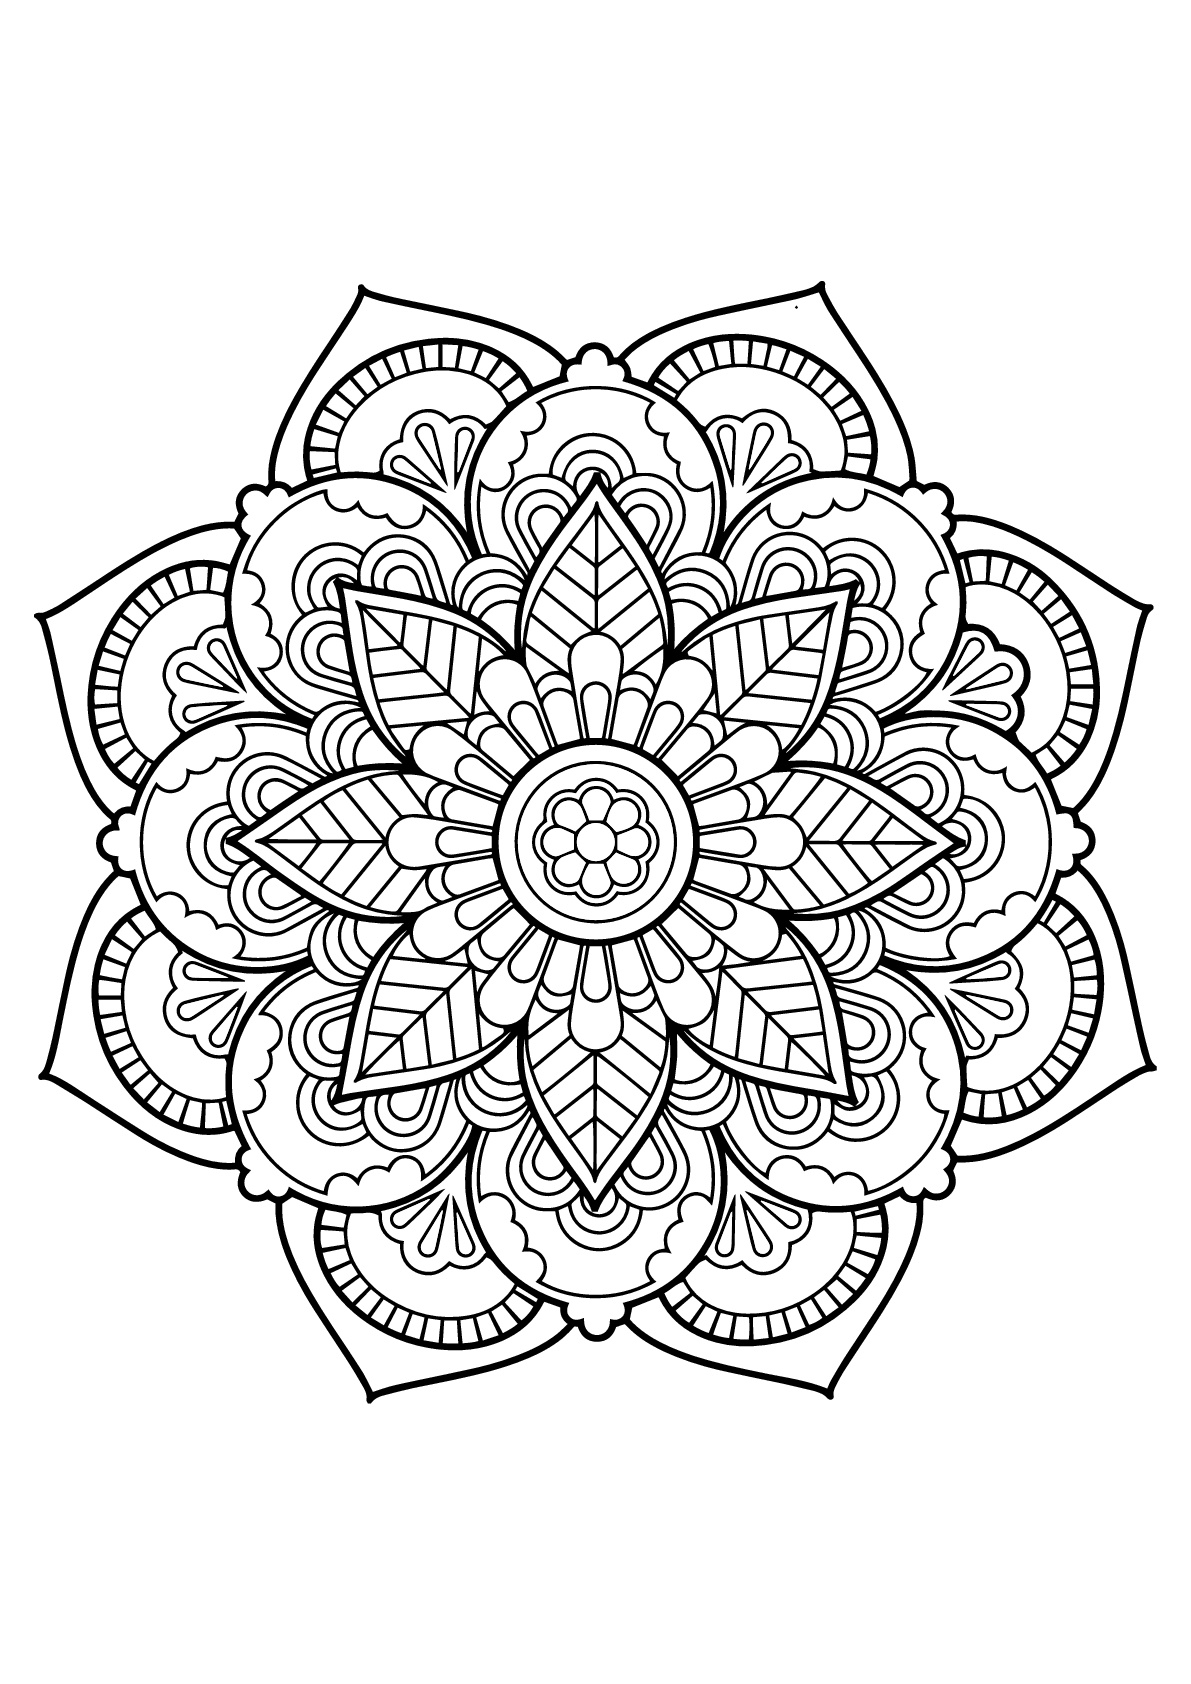 free printable mandalas to color for adults mandala from free coloring books for adults 24 mandalas adults color mandalas free for to printable